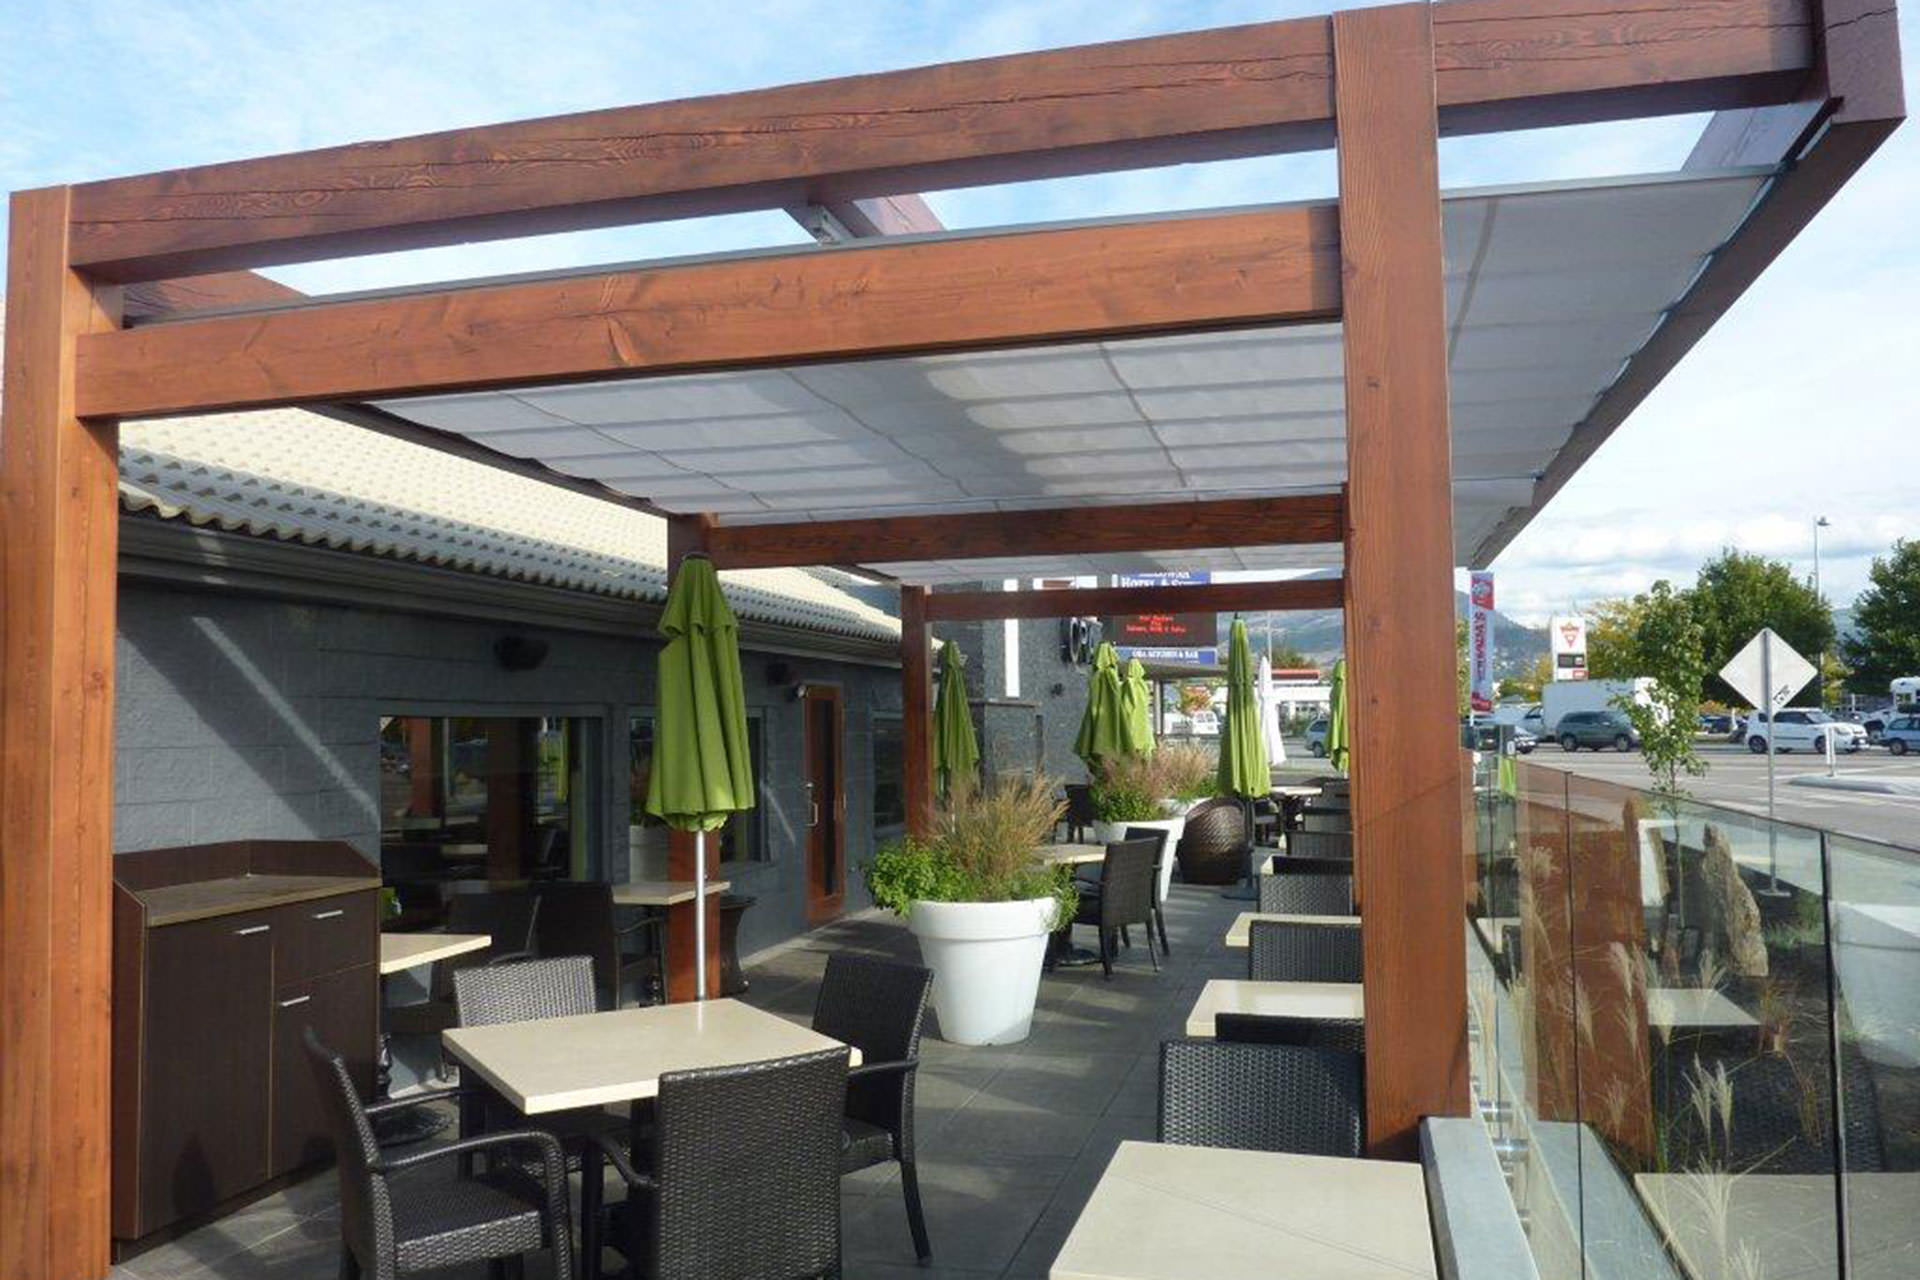 Cantilevered Retractable Canopy